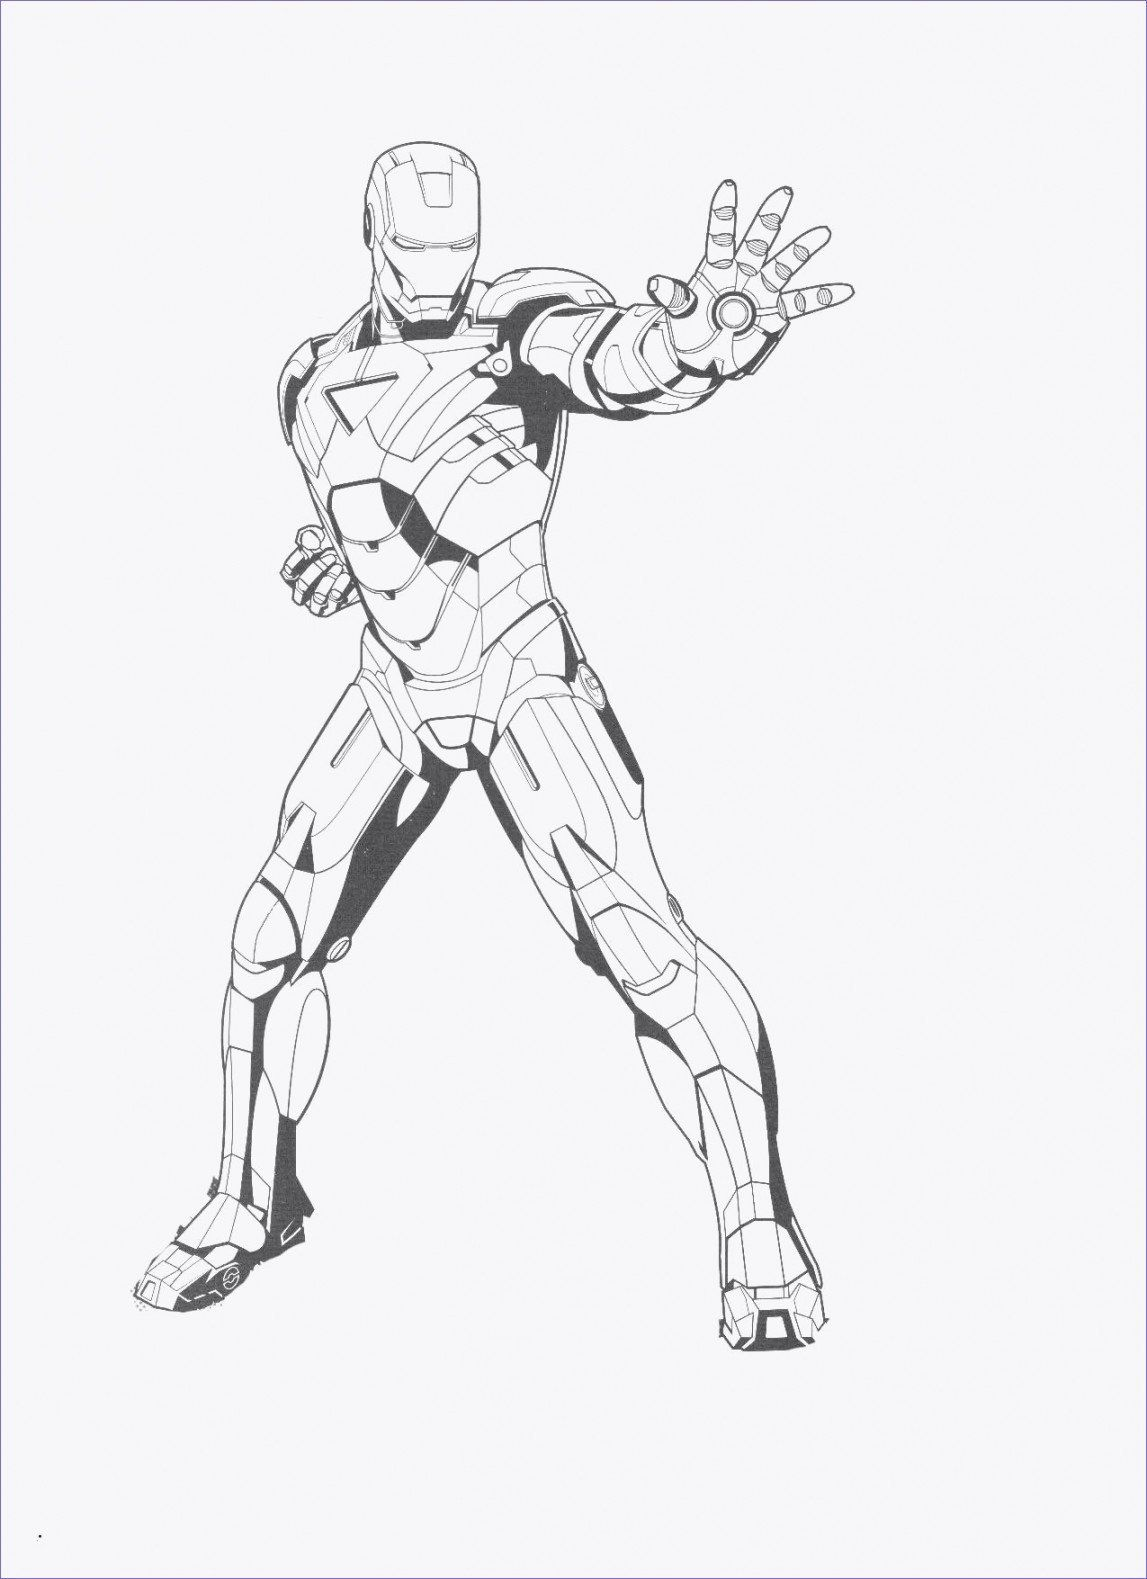 Lego Iron Man Coloring Page Lego Coloring Pages Lego Coloring Lego Iron Man